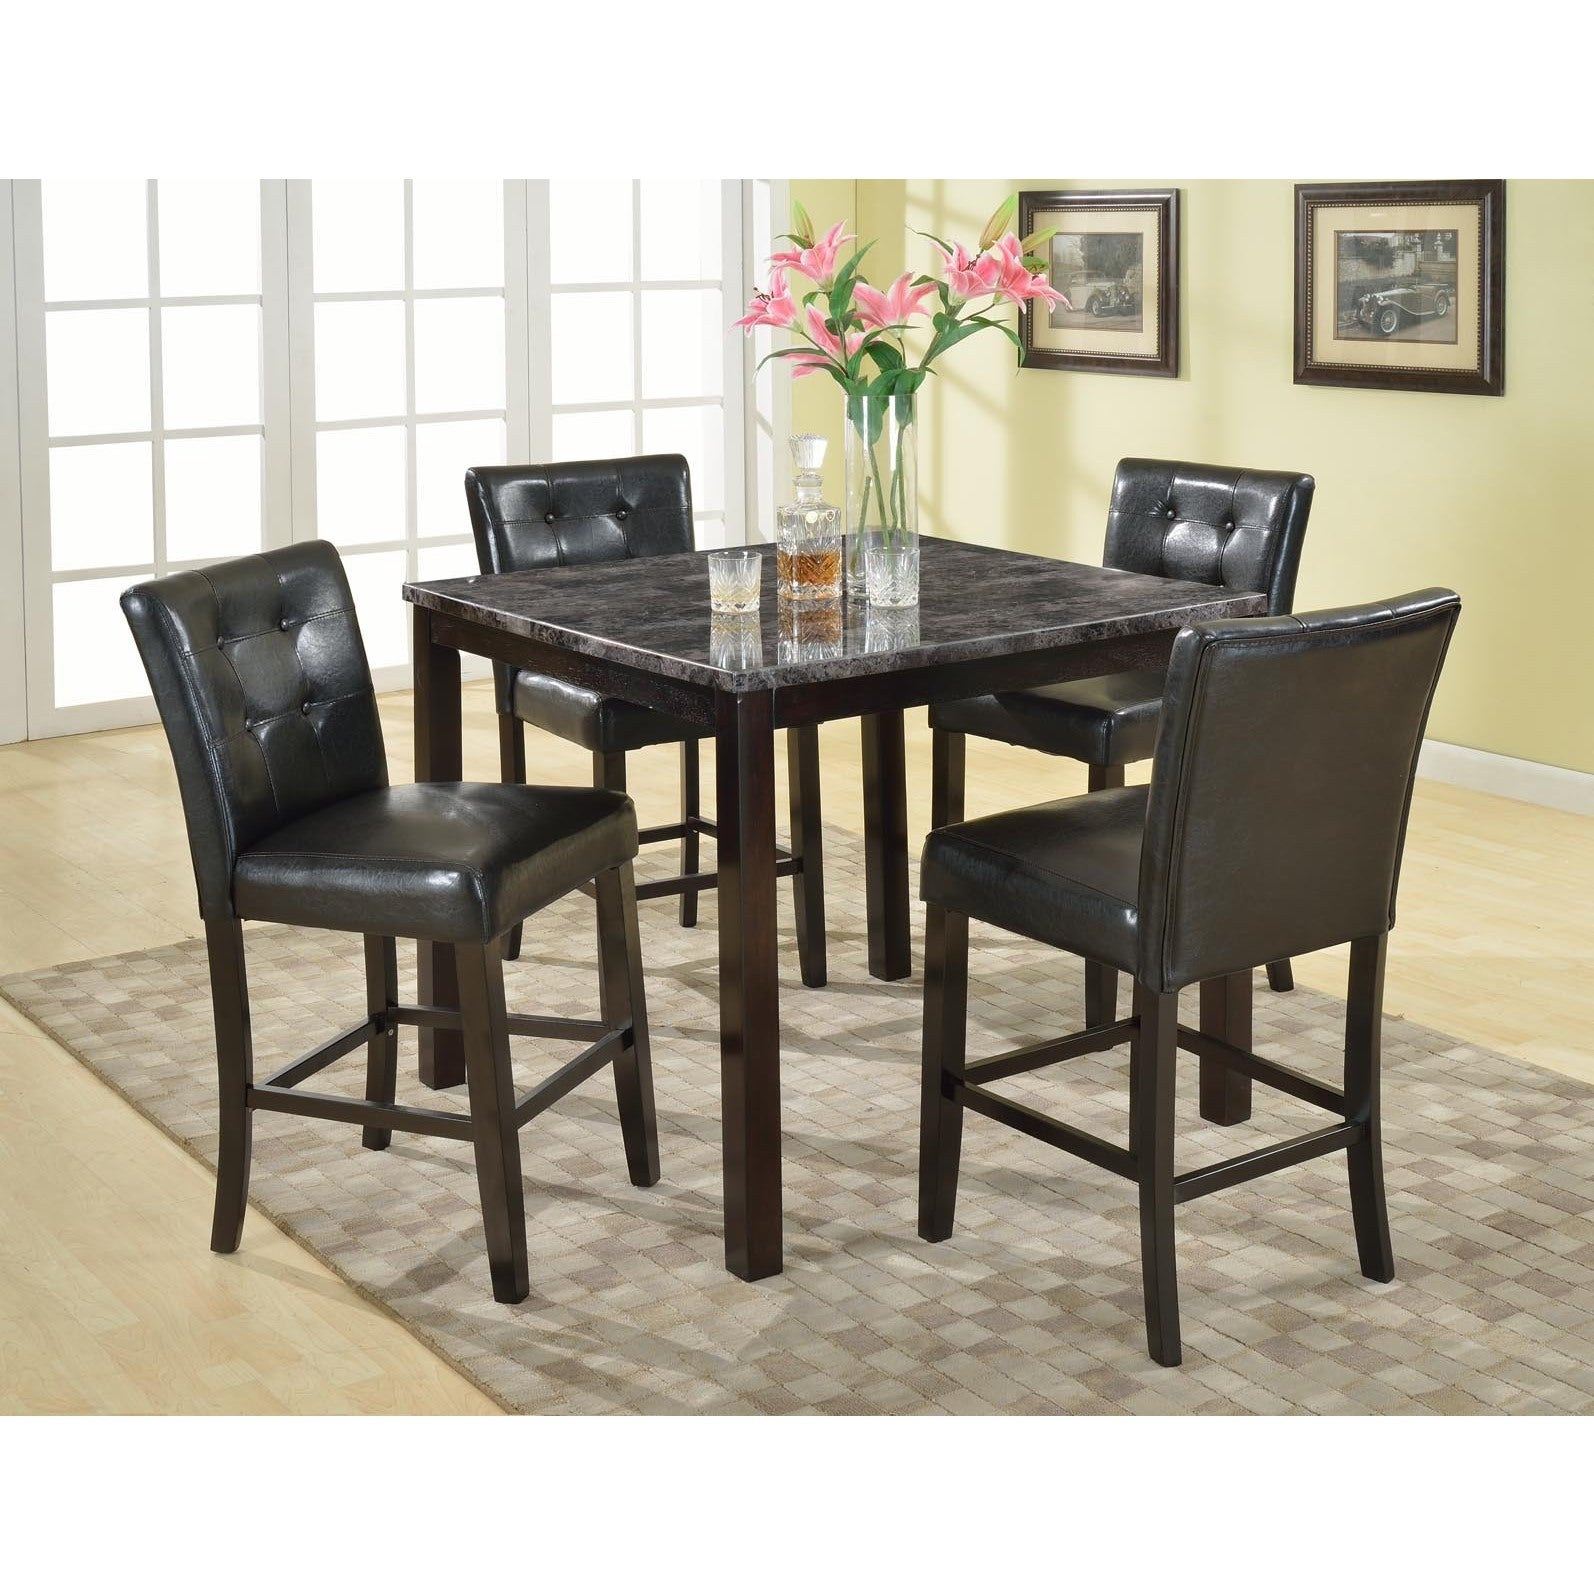 Praia 5 Piece Artificial Dark Marble Pub Dining Table and...